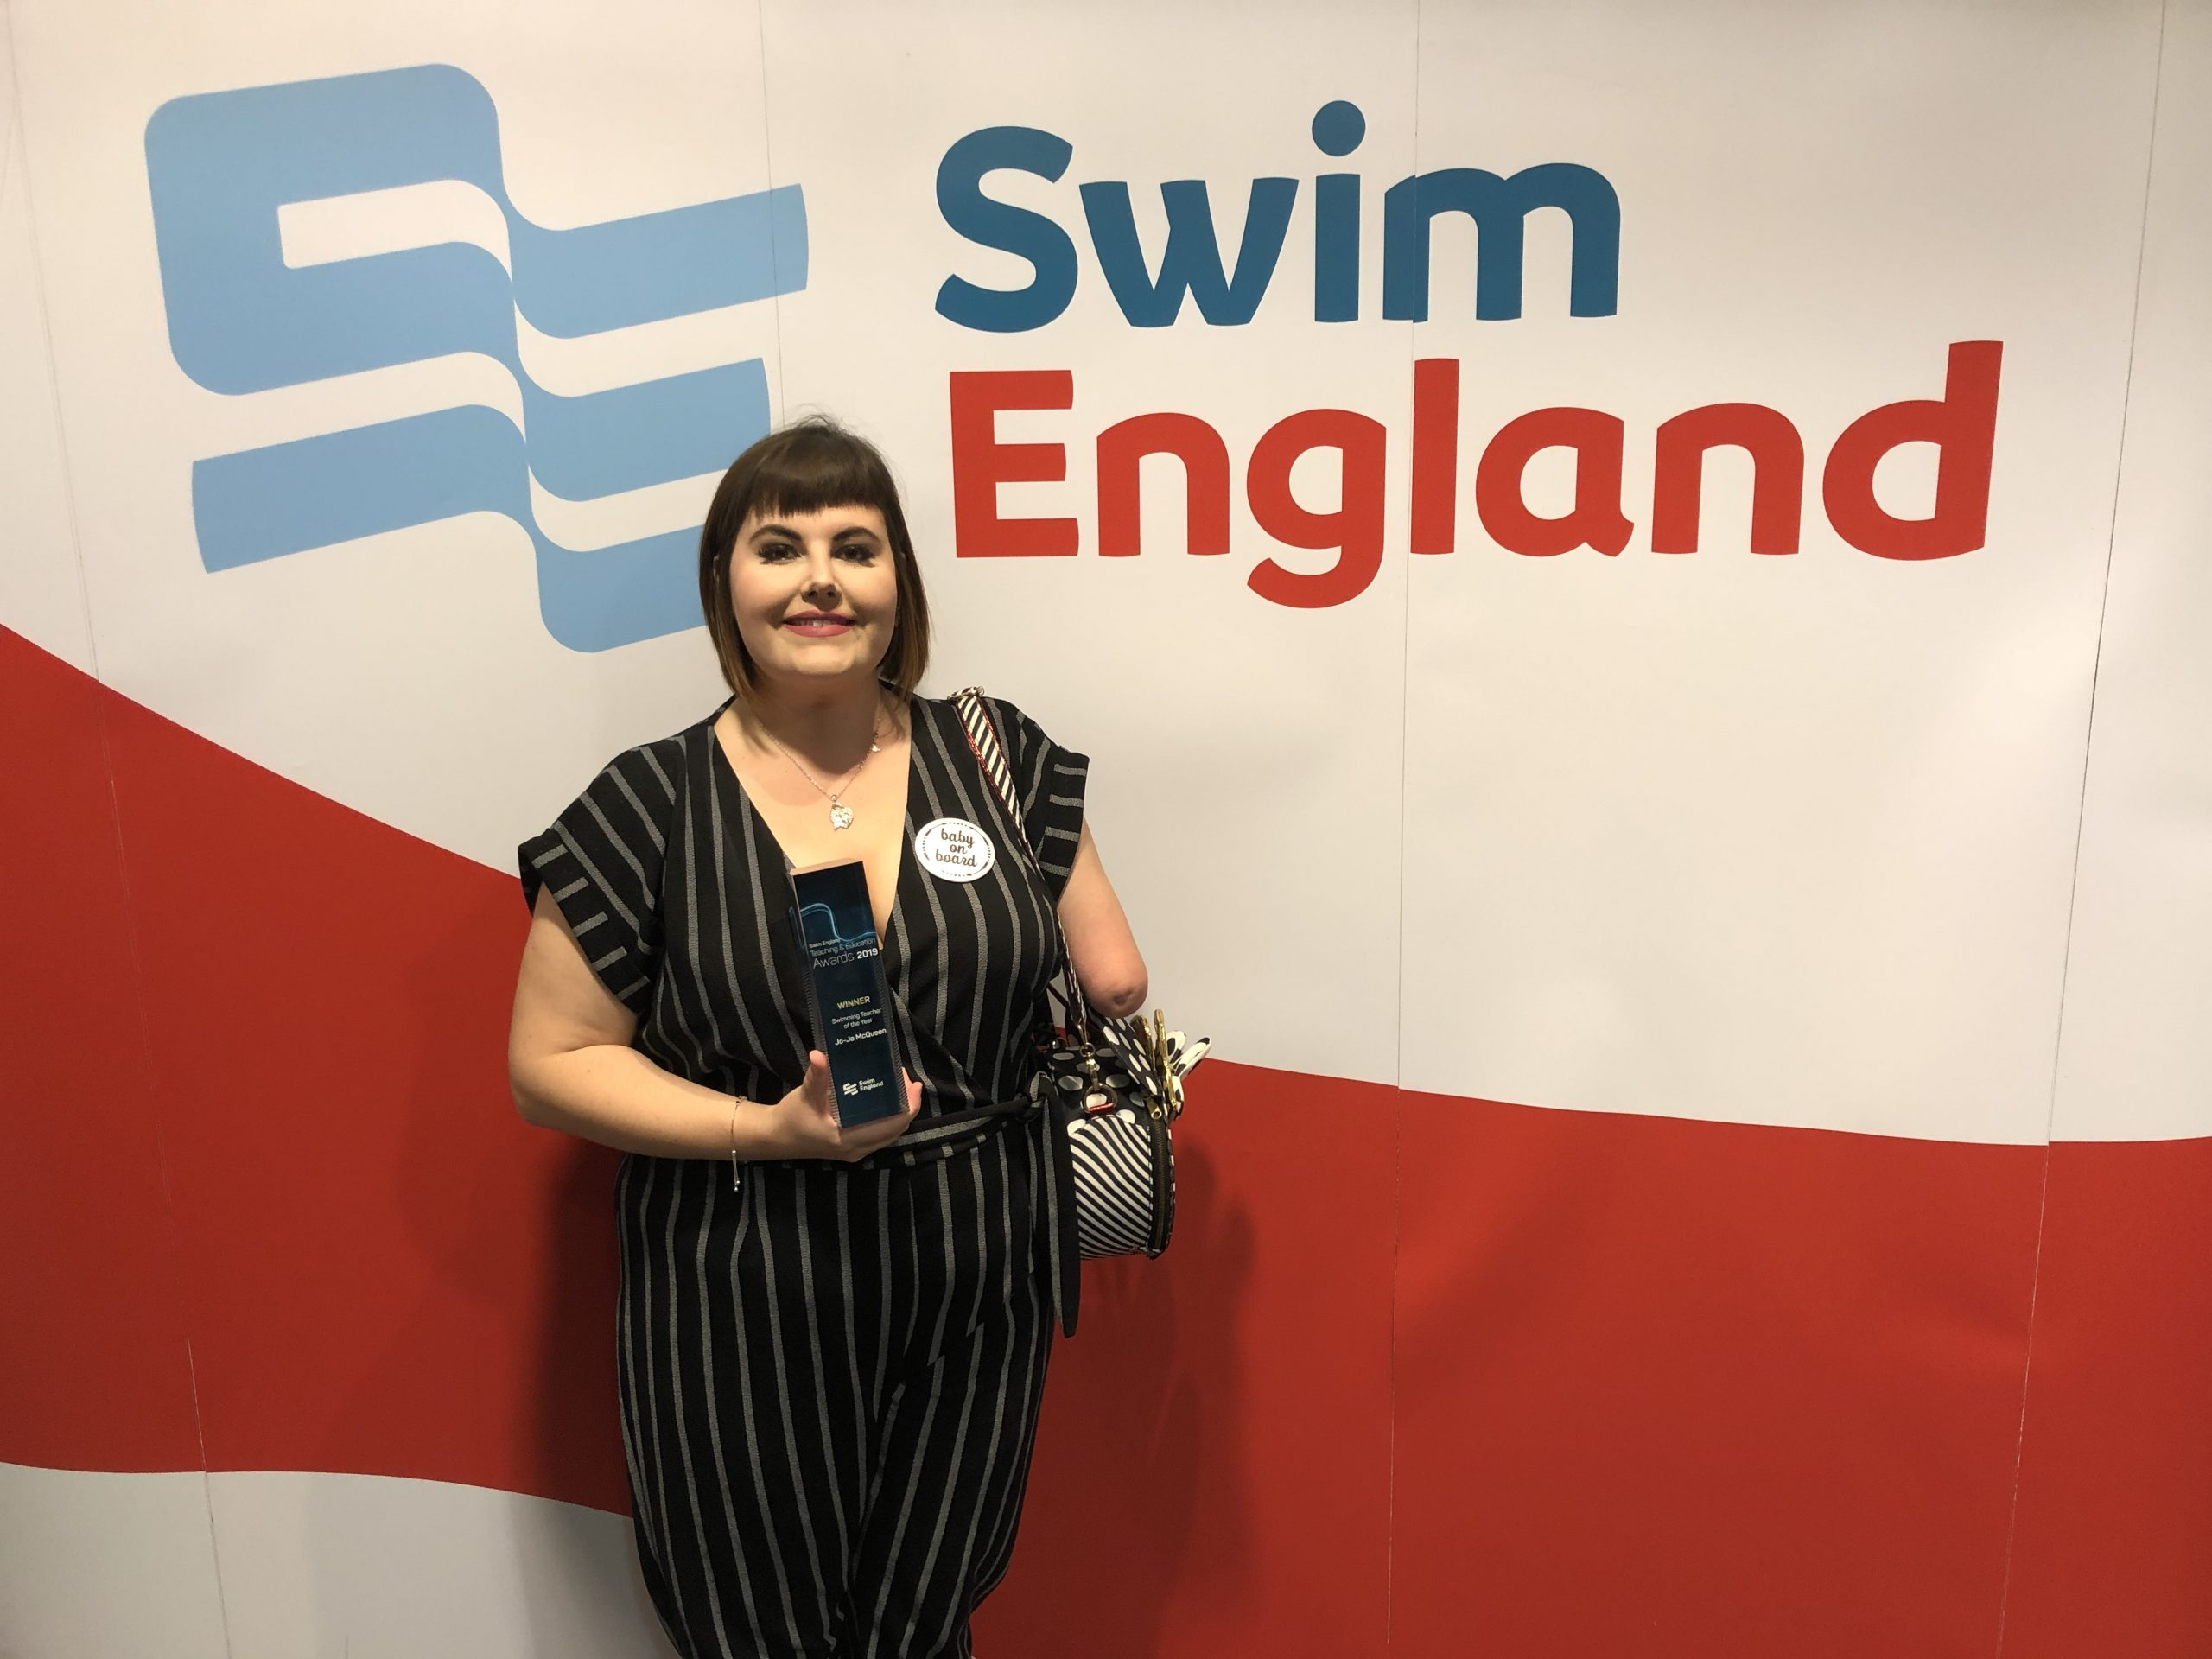 COURAGEOUS CLEMENTS HALL SWIM TEACHER WINS 'SWIMMING TEACHER OF THE YEAR' AWARD